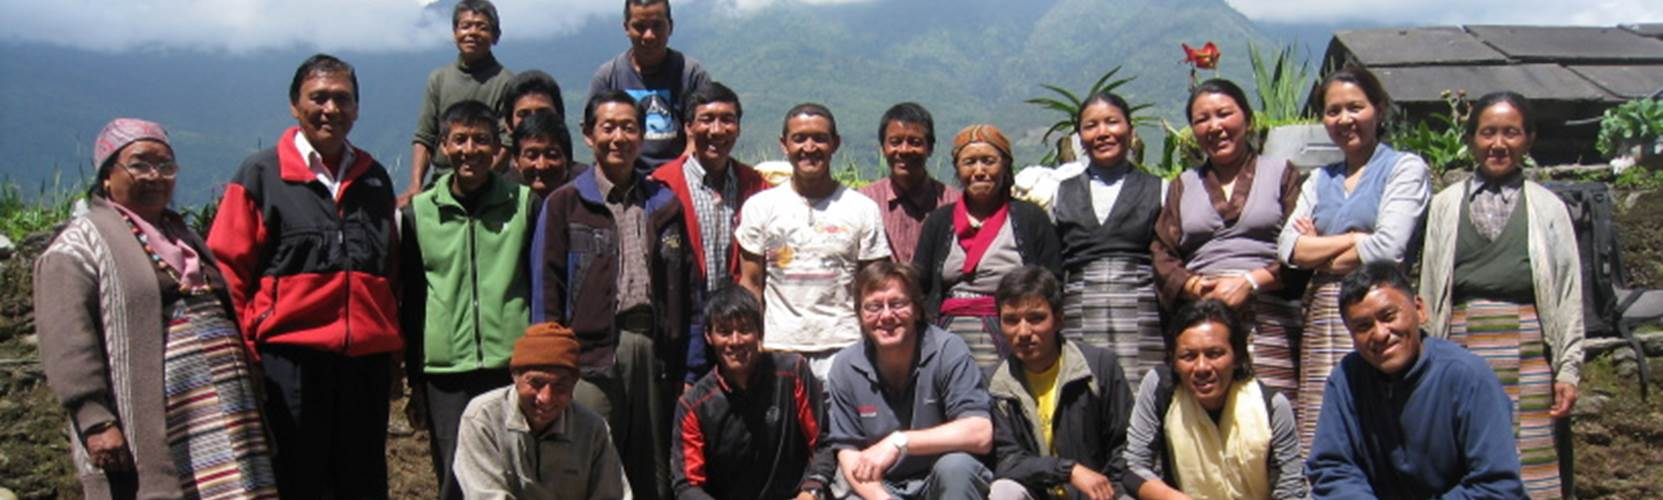 Village in Nepal - volunteering in Nepal